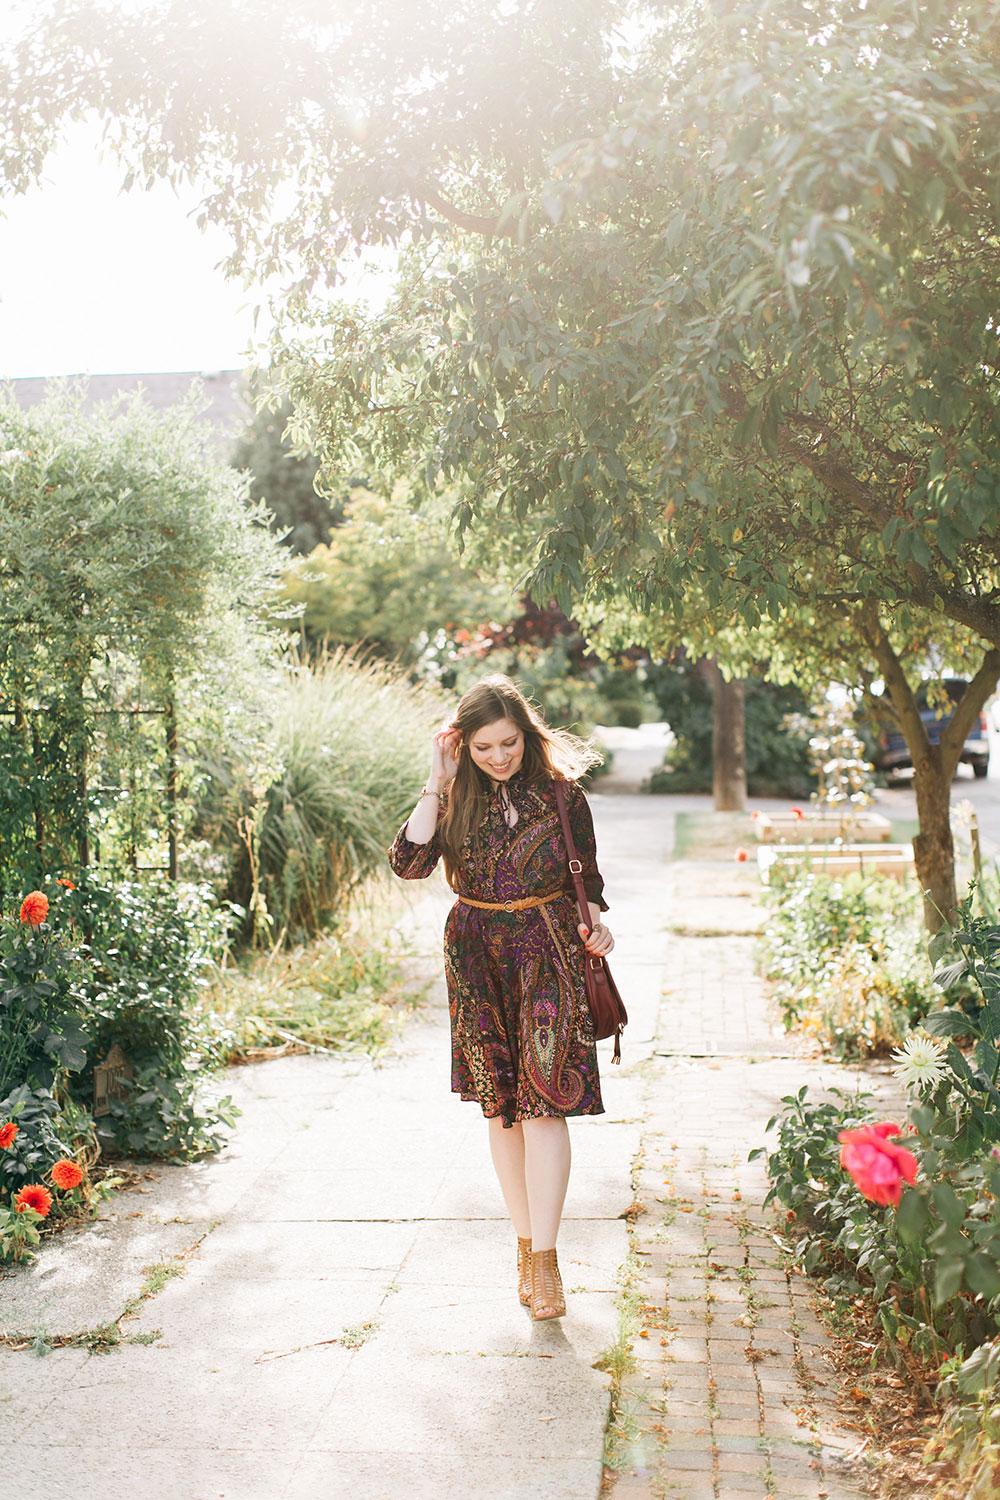 70s Bohemian Paisley Purple Dress Outfit with Sandals // hellorigby seattle fashion blog